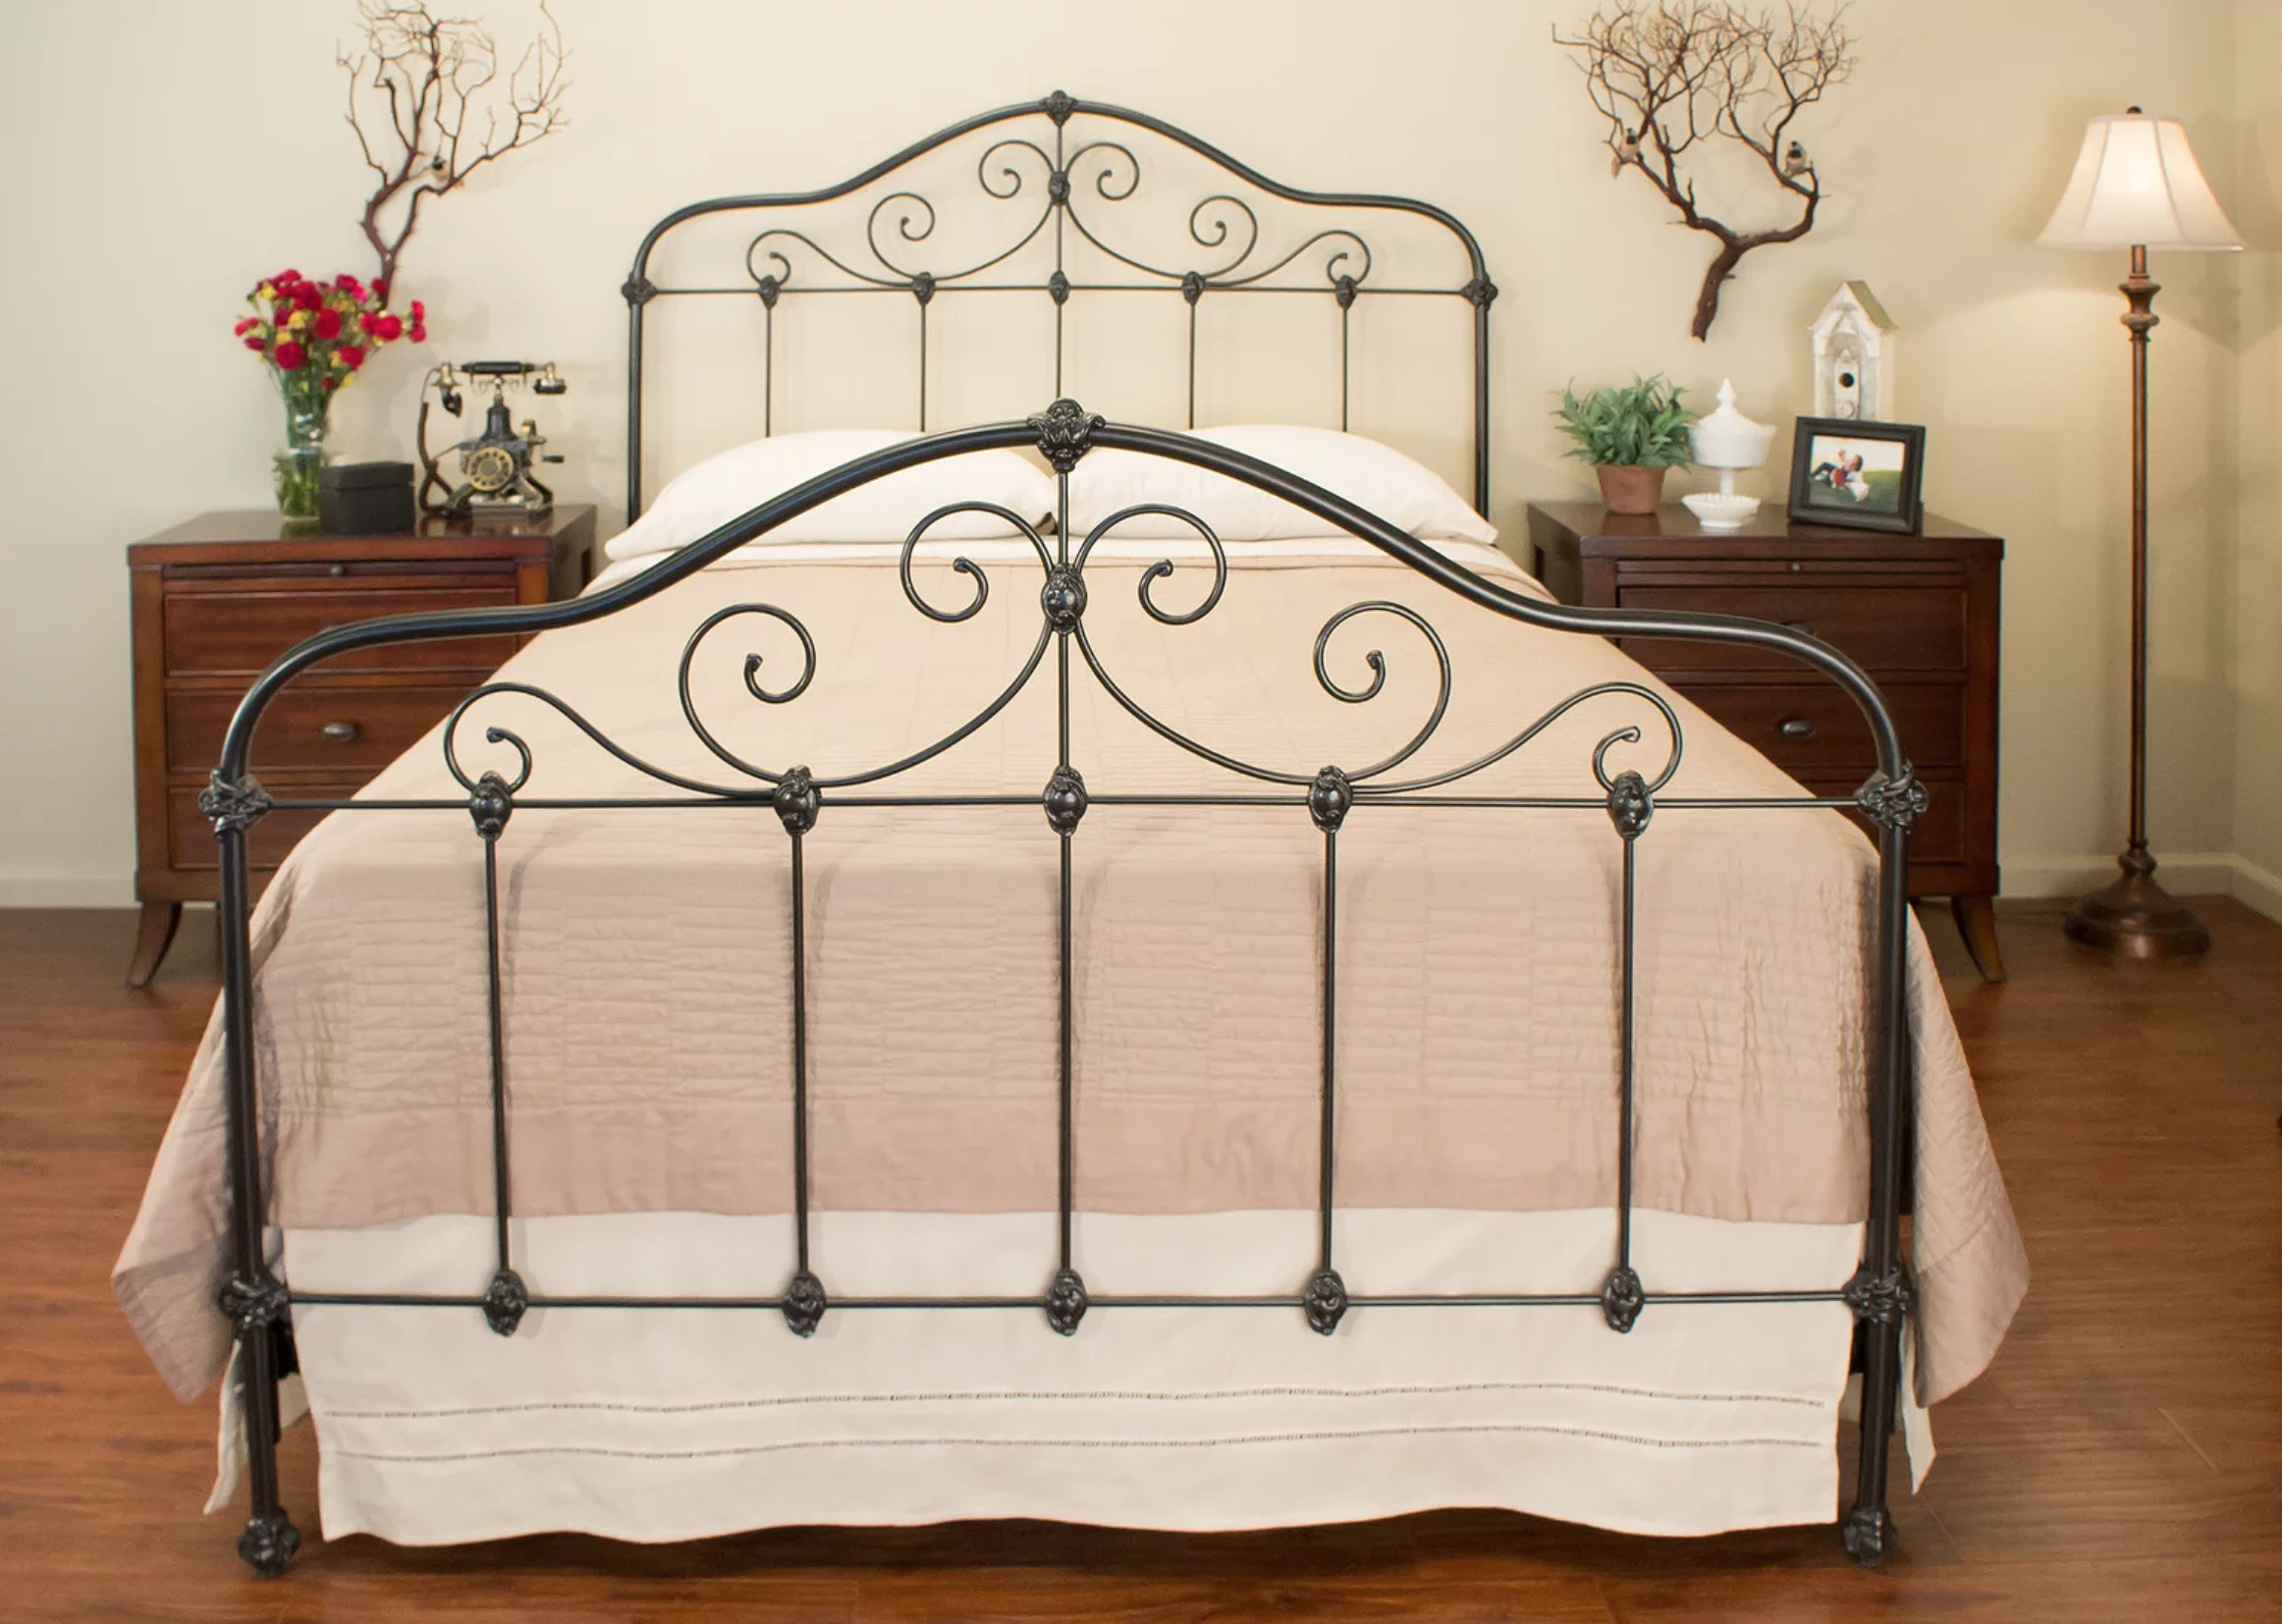 Benicia Foundry Claiborne Wrought Iron Twin Bed & Trundle